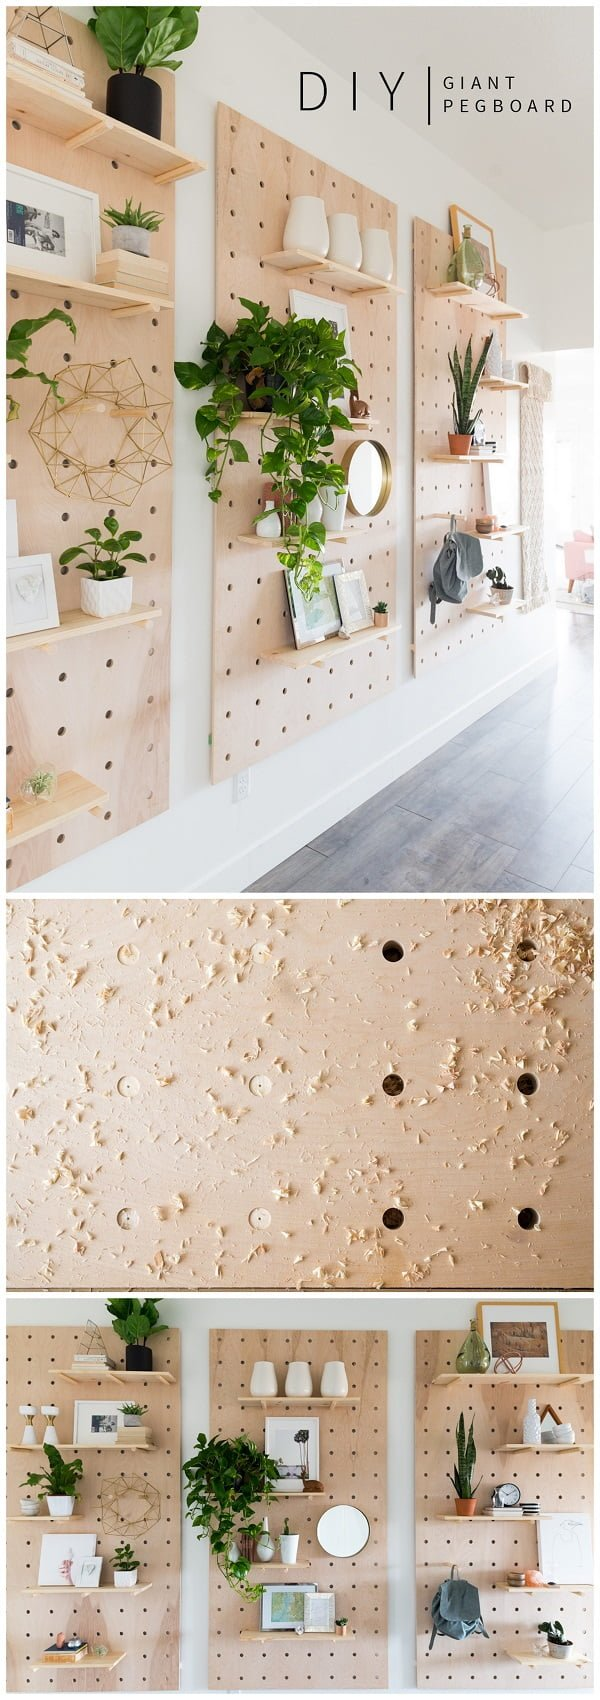 Check out this easy idea on how to make a #DIY giant pegboard #Scandinavian style #crafts #homedecor #project